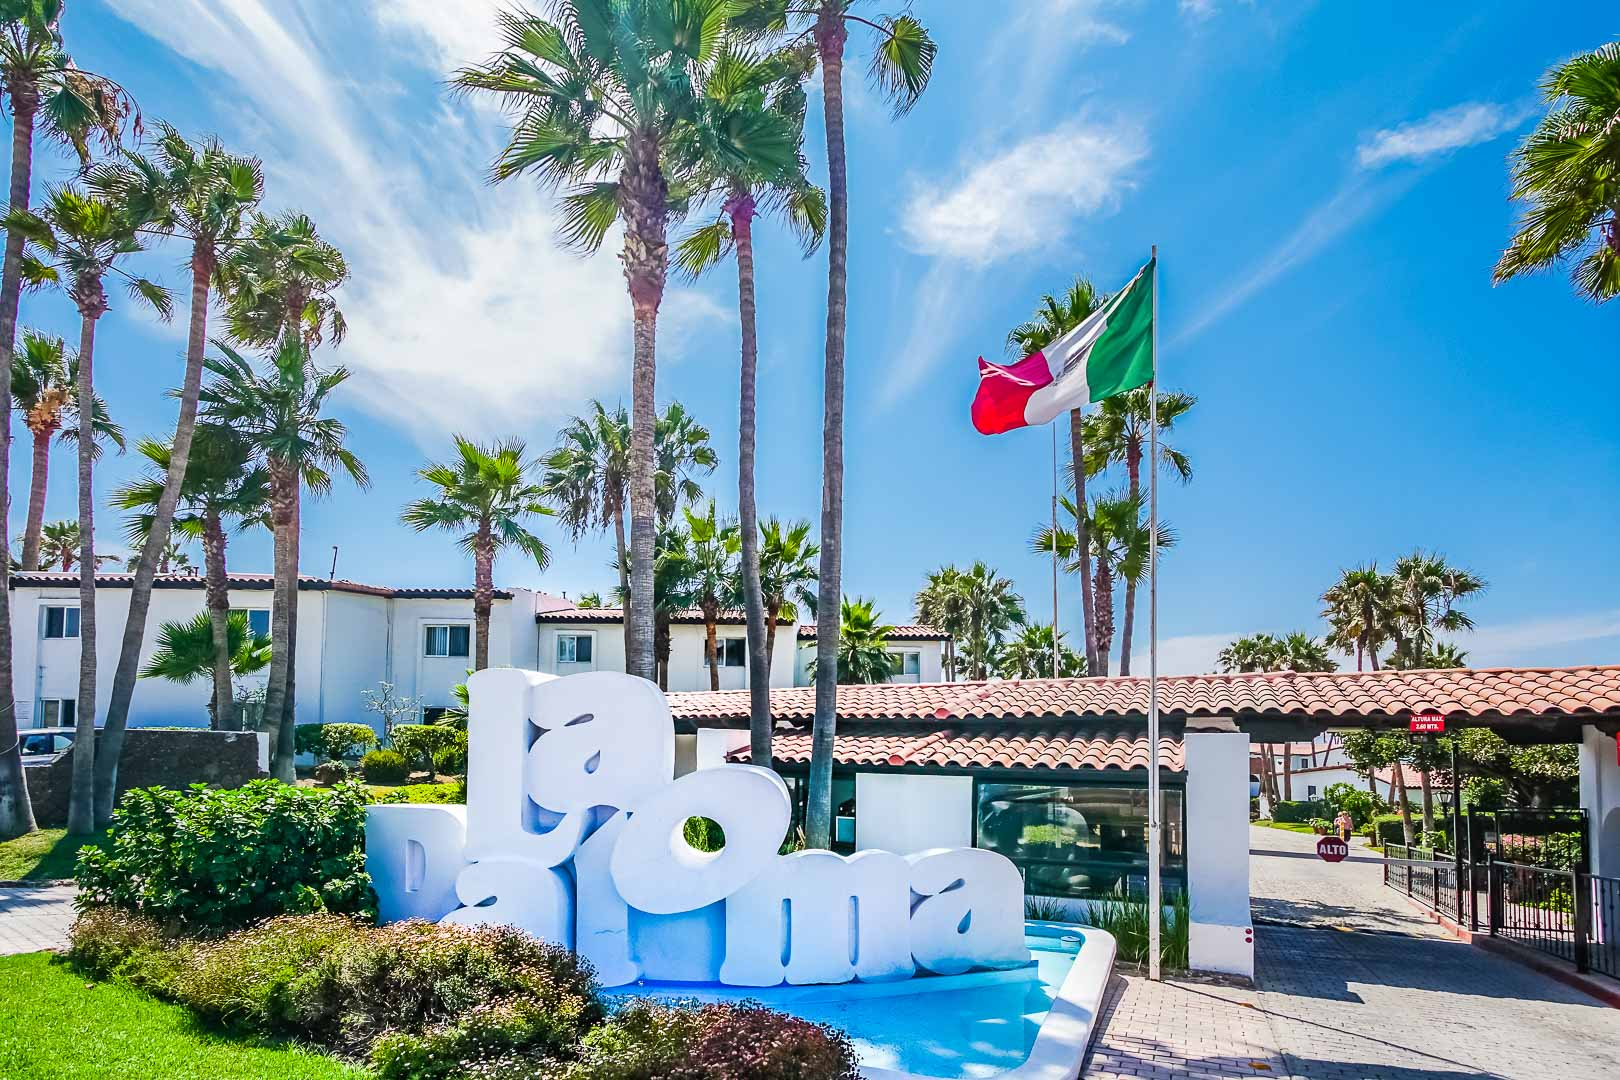 A vibrant resort signage at VRI's La Paloma in Rosarito, Mexico.